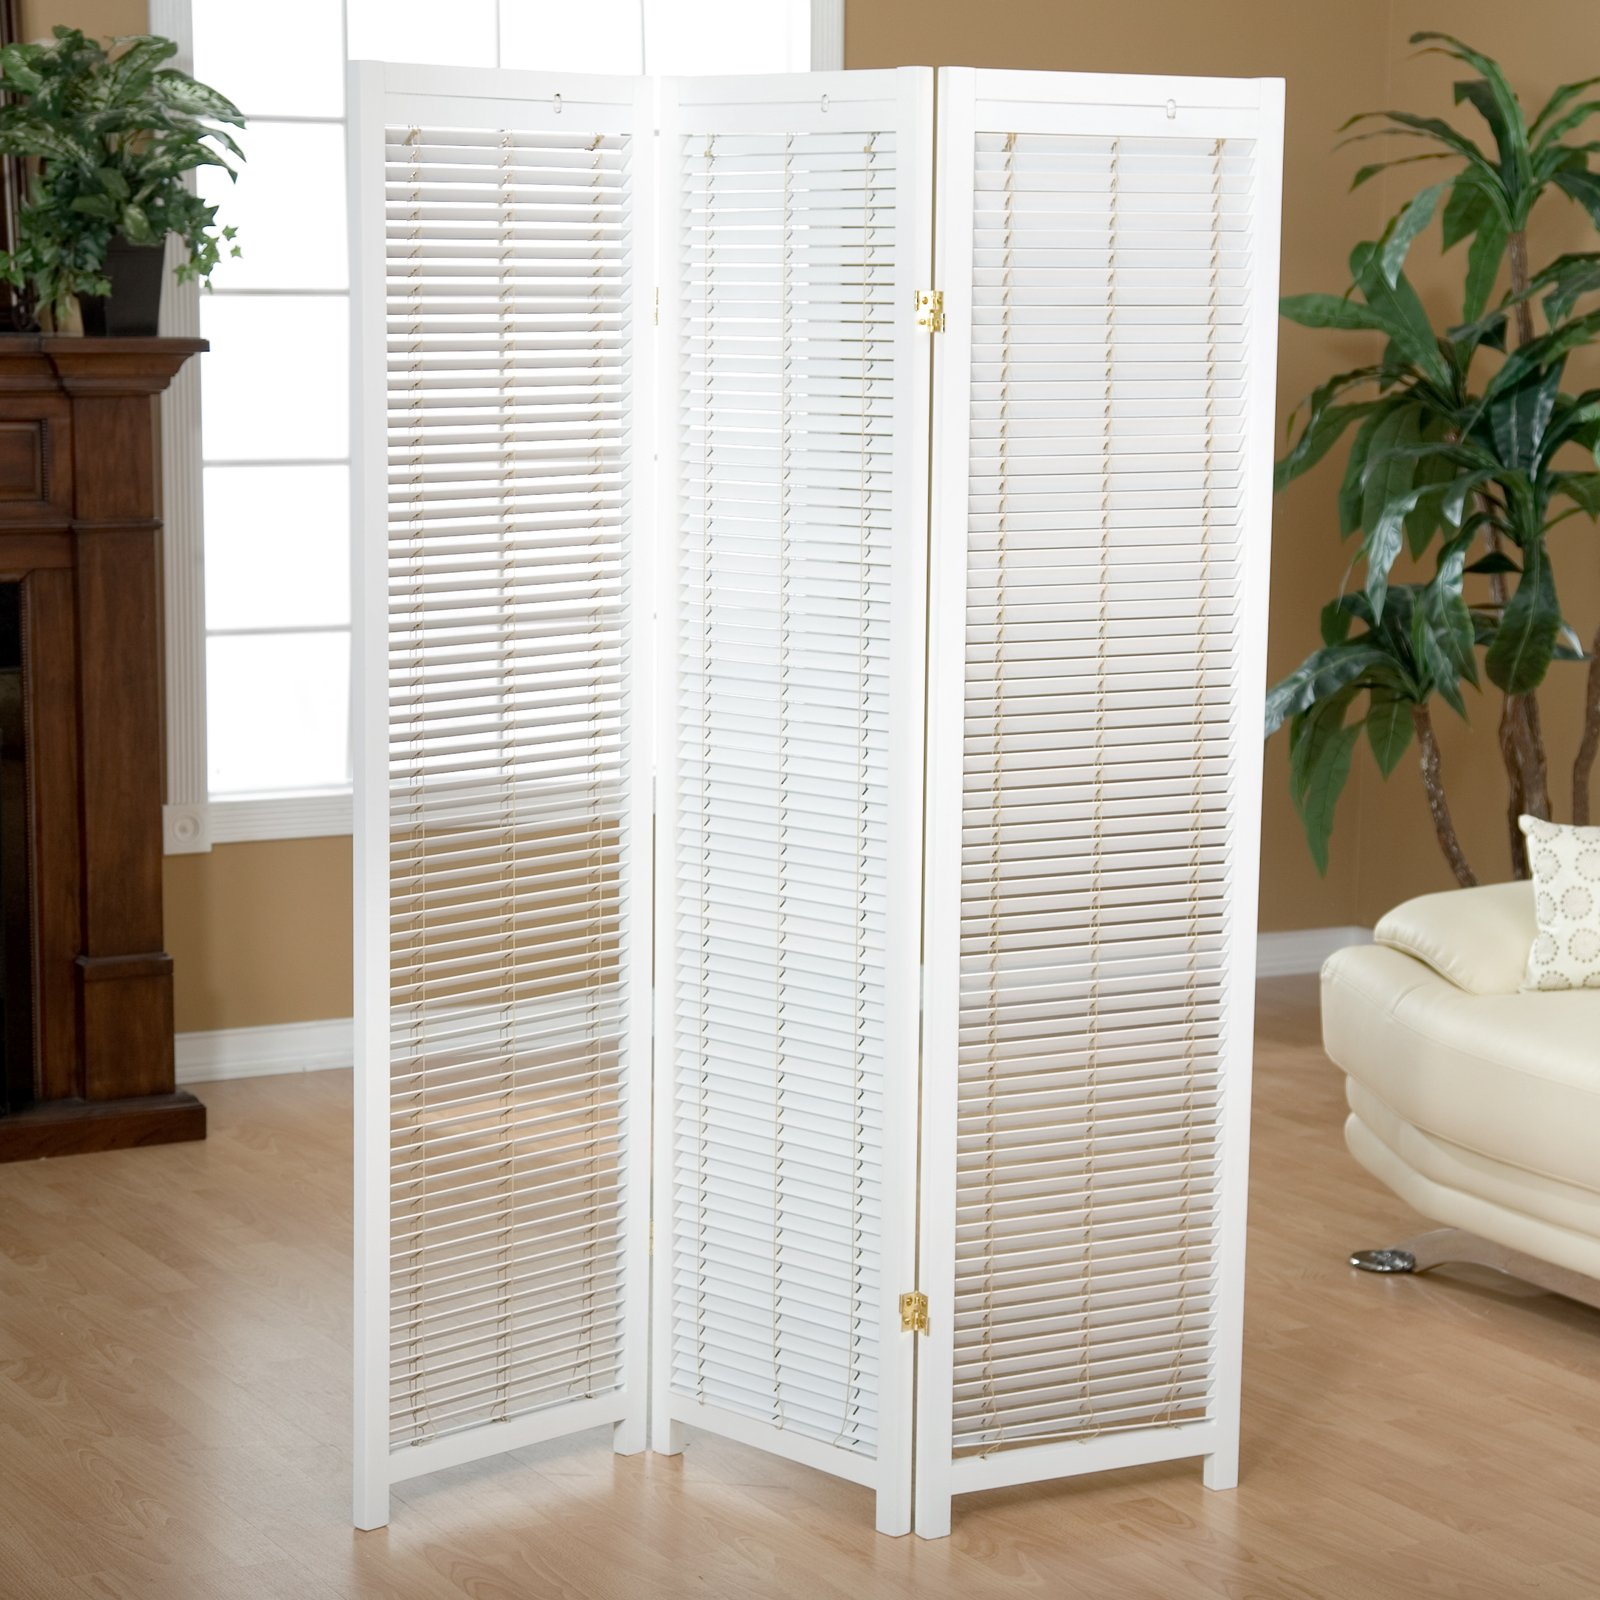 matchstick and center bamboo blinds com shades home kitchen